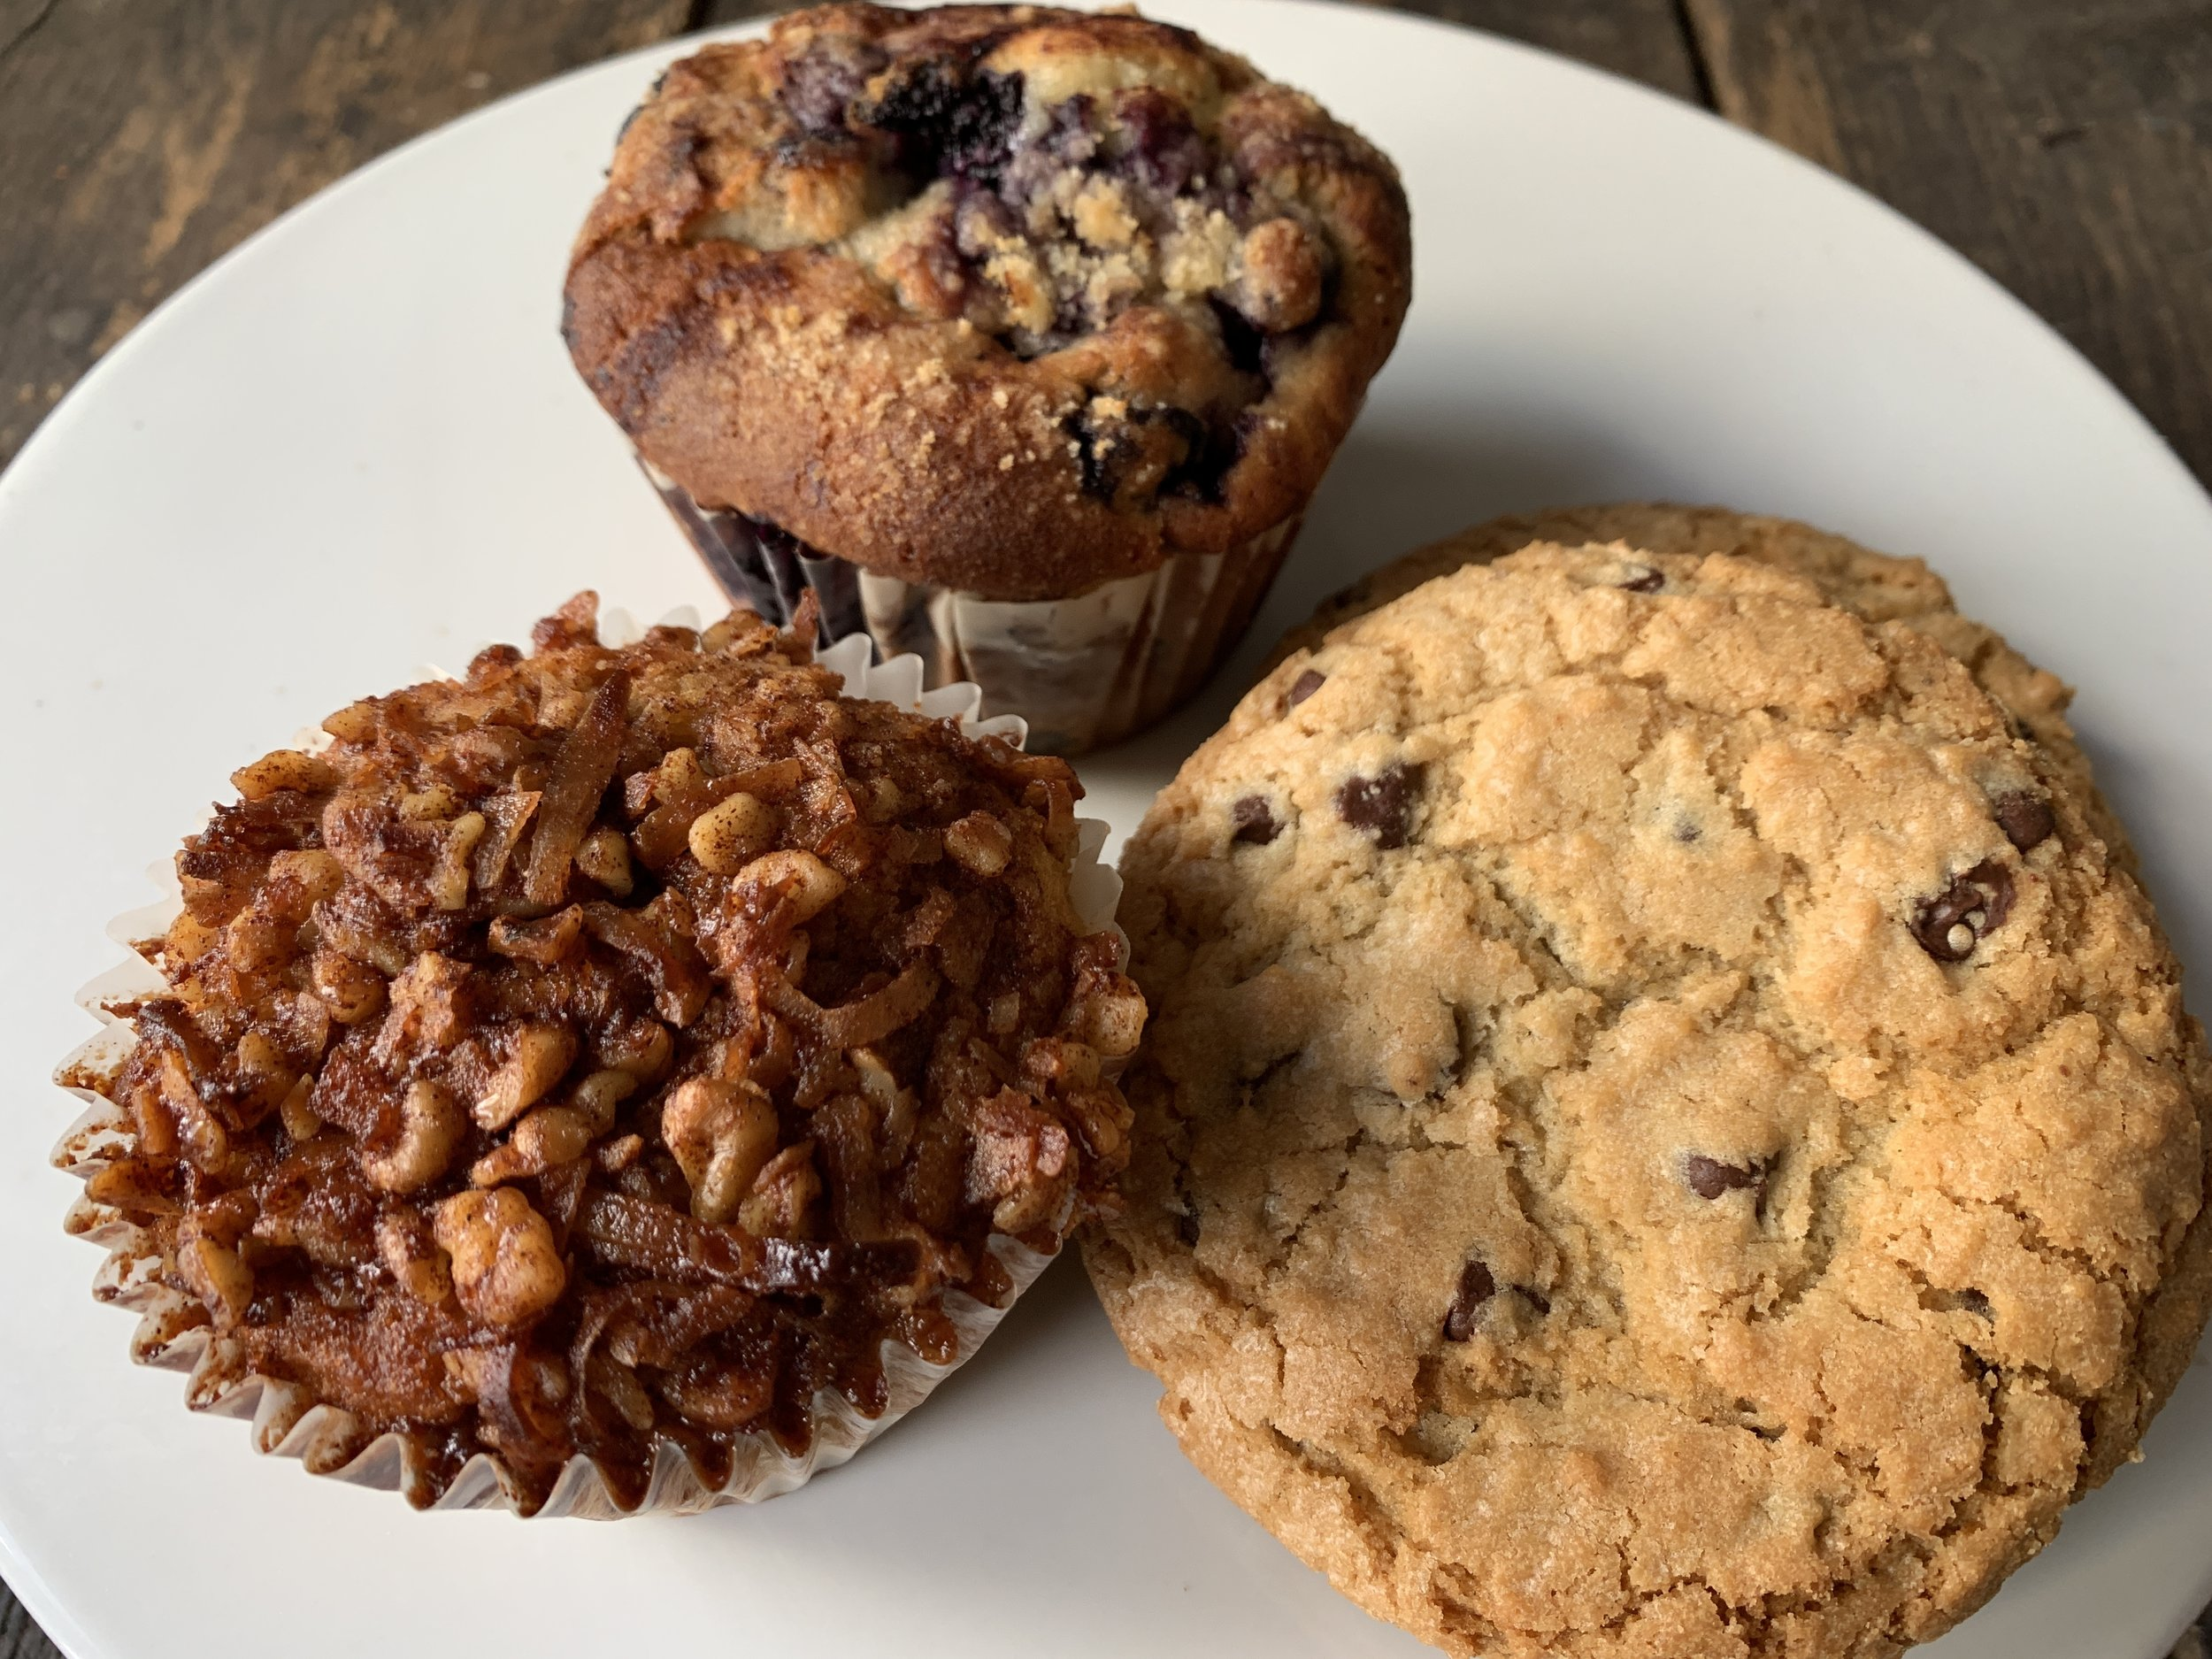 The best cookies and muffins around w/ the awards & accolades to prove it.